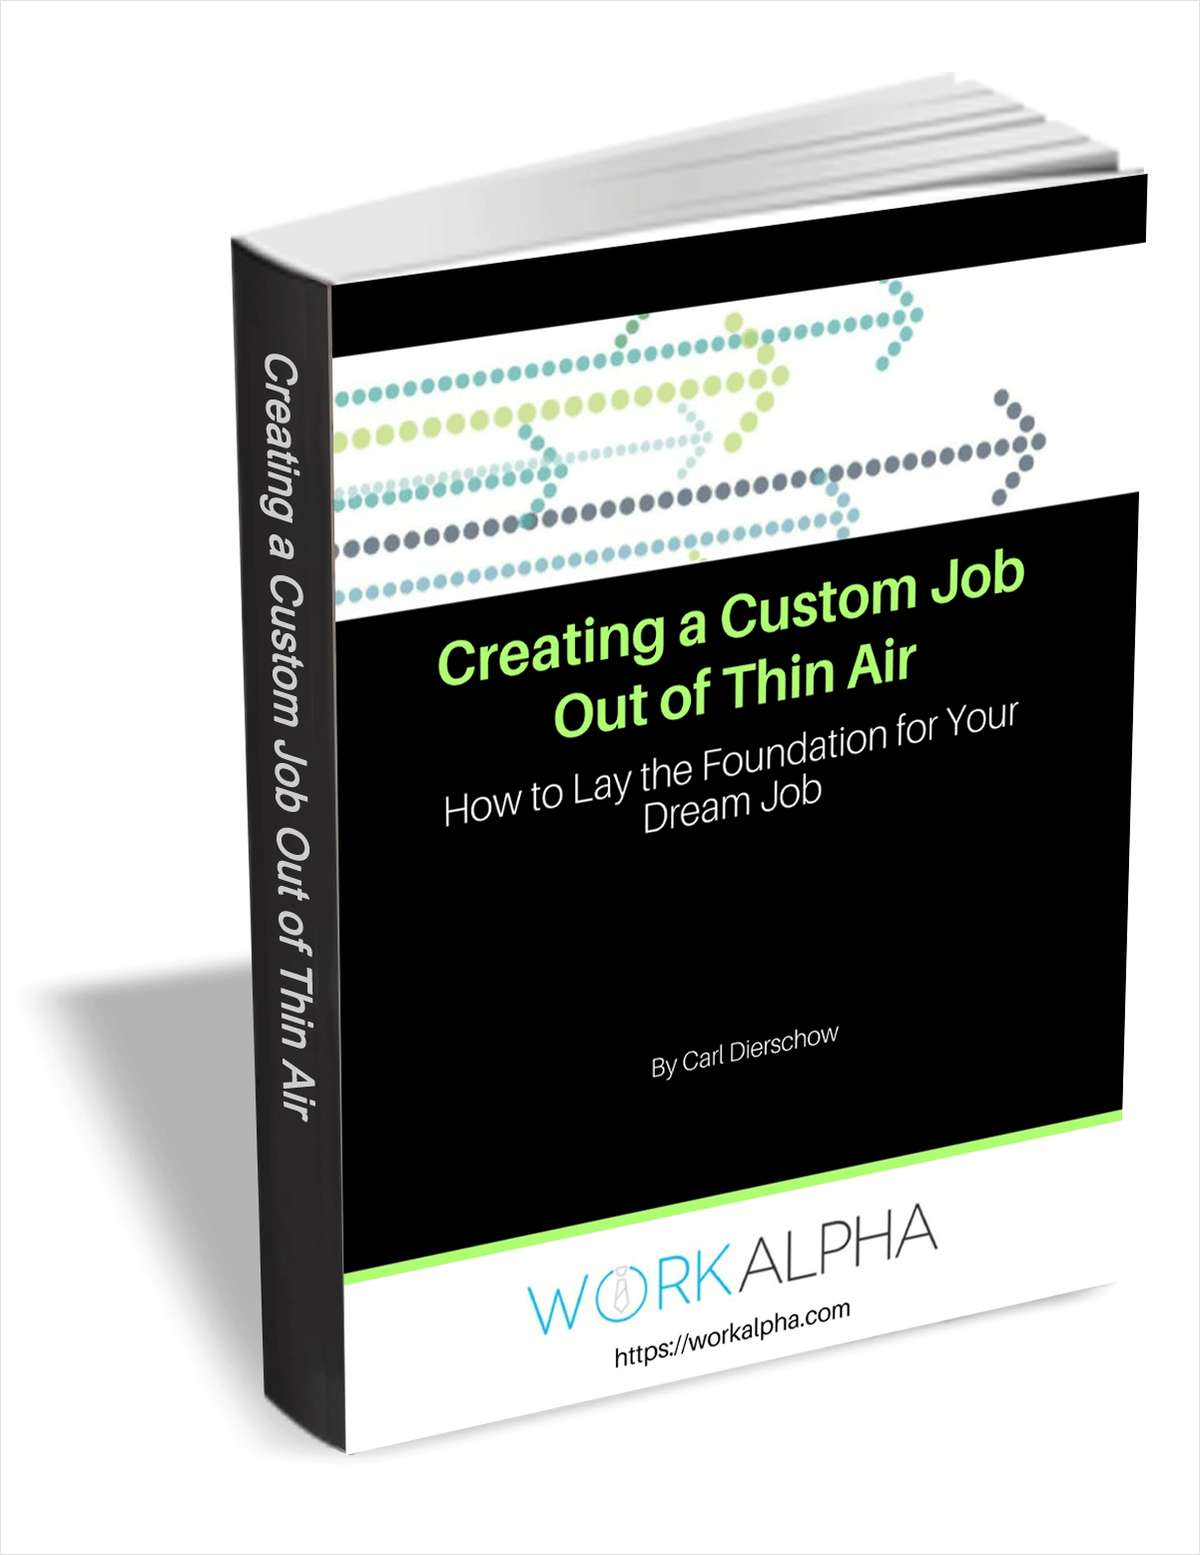 Creating a Custom Job Out of Thin Air - How to Lay the Foundation for Your Dream Job